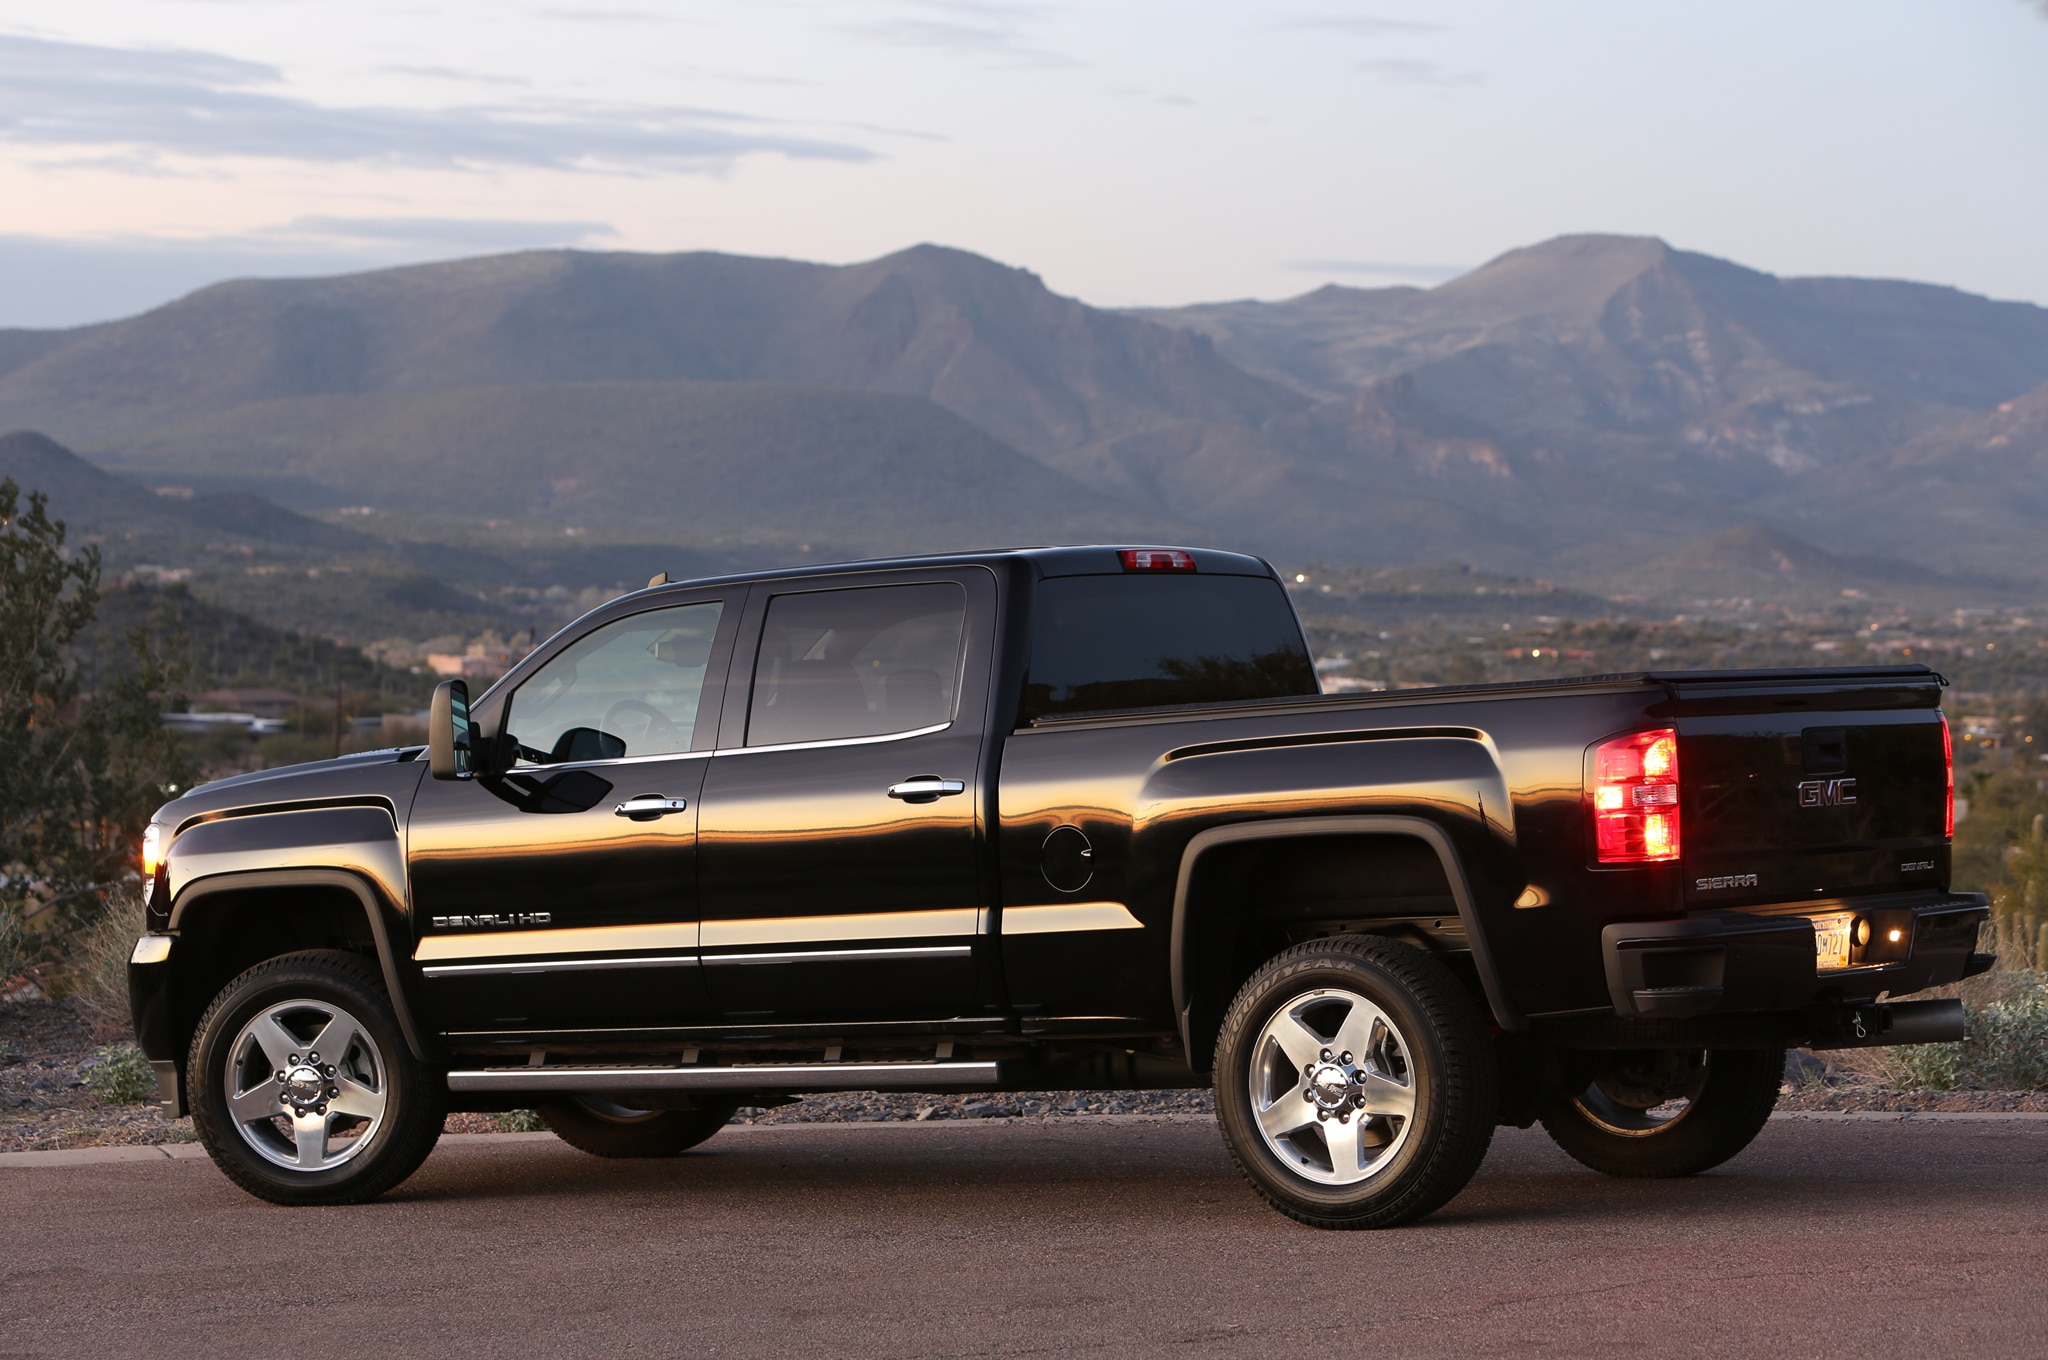 2015 GMC Sierra 2500HD Denali rear view